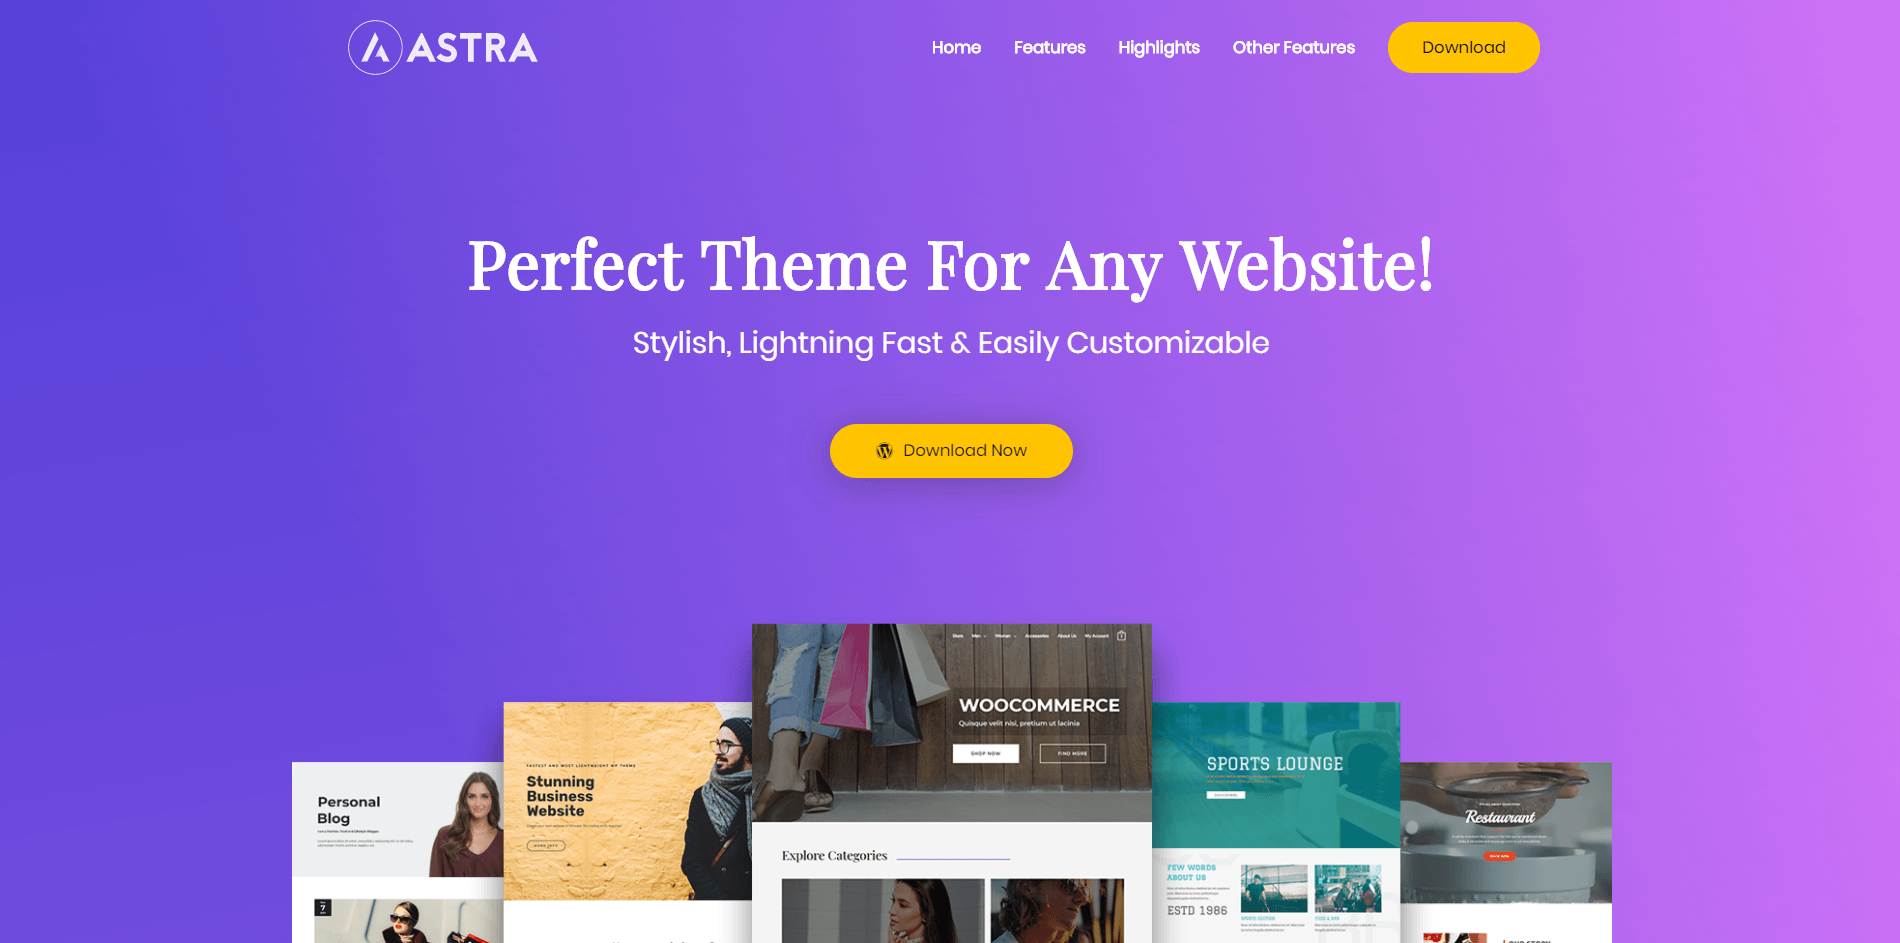 The Product Landing Page demo for Astra.